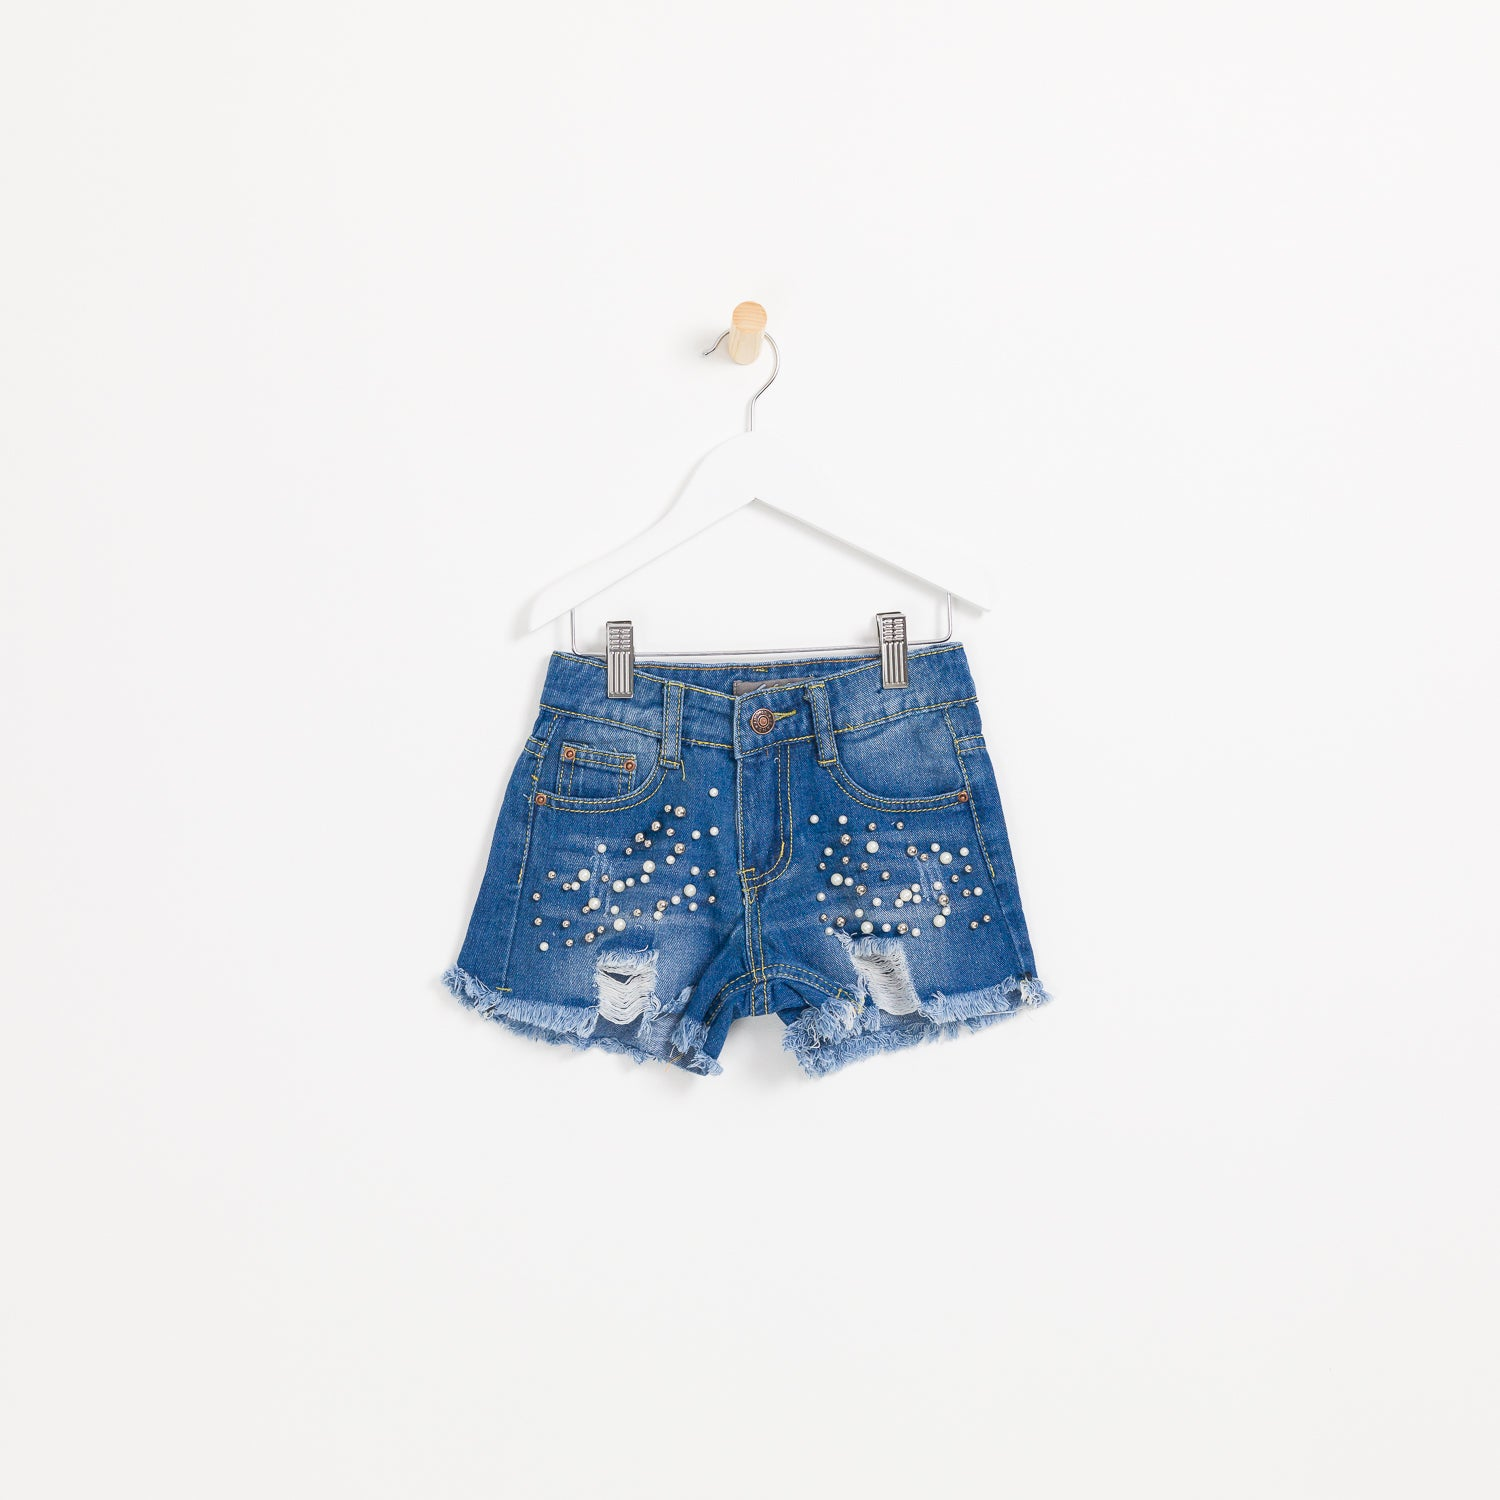 Children's girls raw denim shorts pearls and distressed